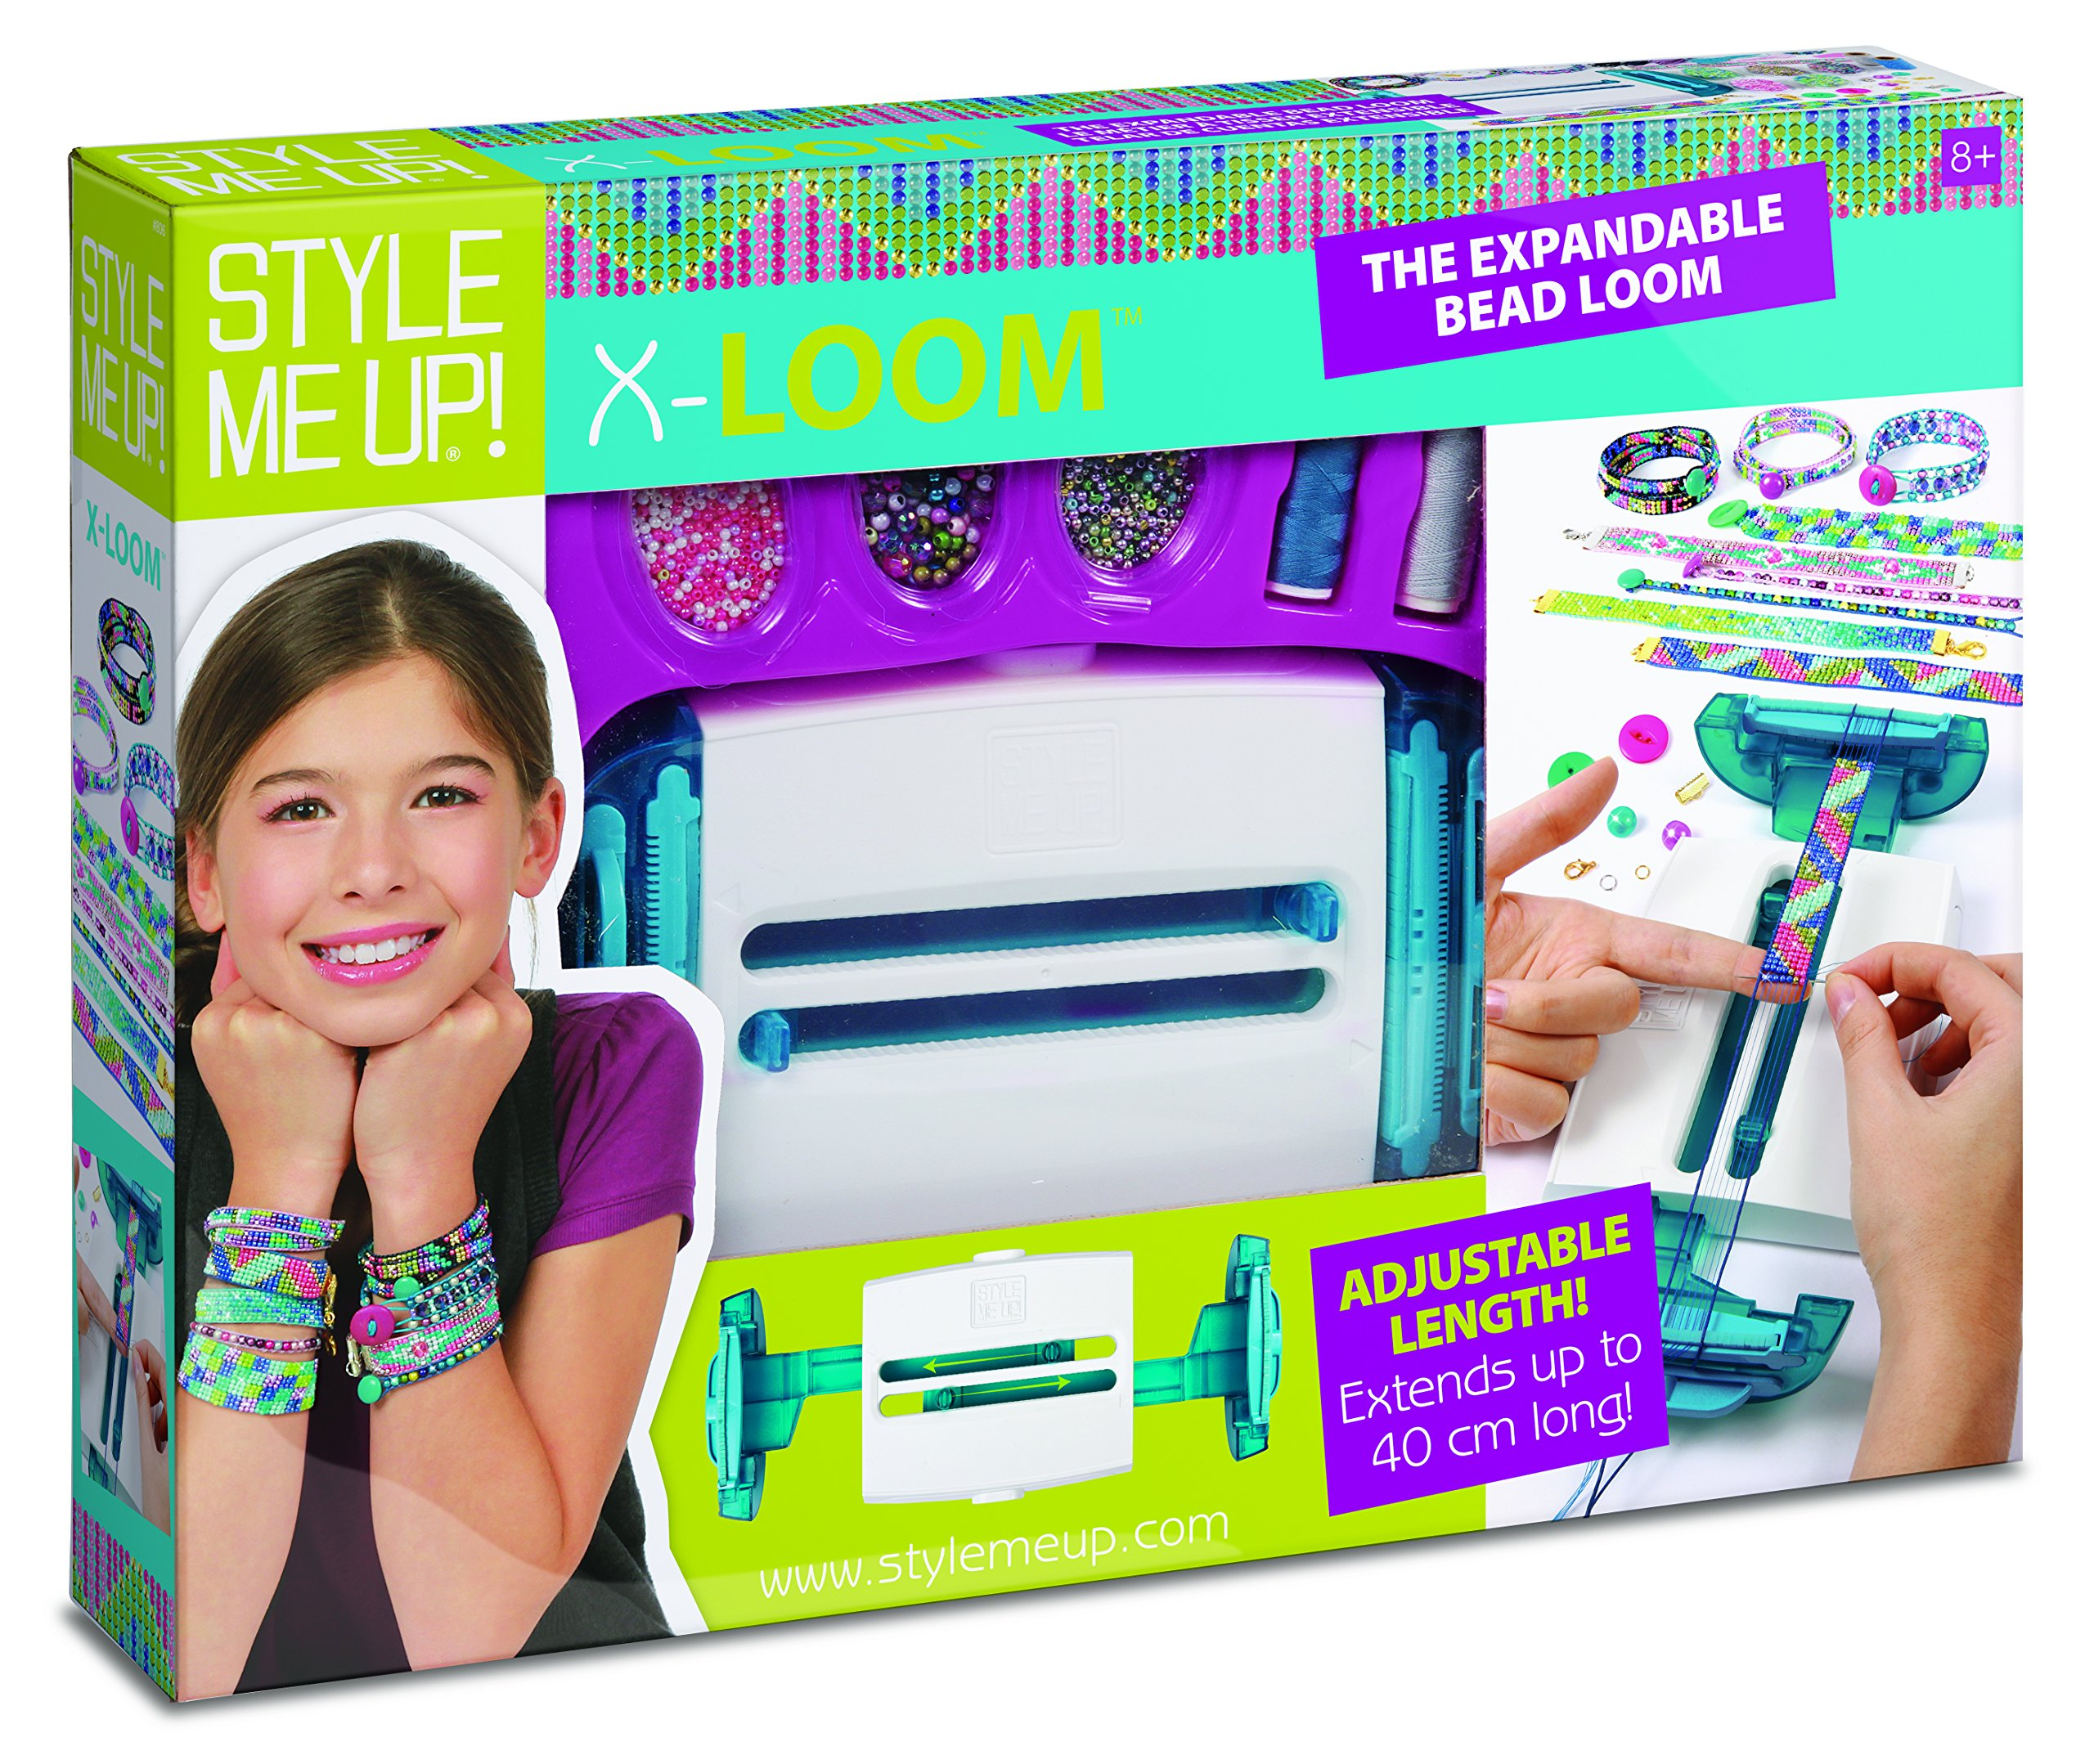 Wooky Entertainment Style Me Up! x -Loom Kit-Adjustable Beads Up to 18''